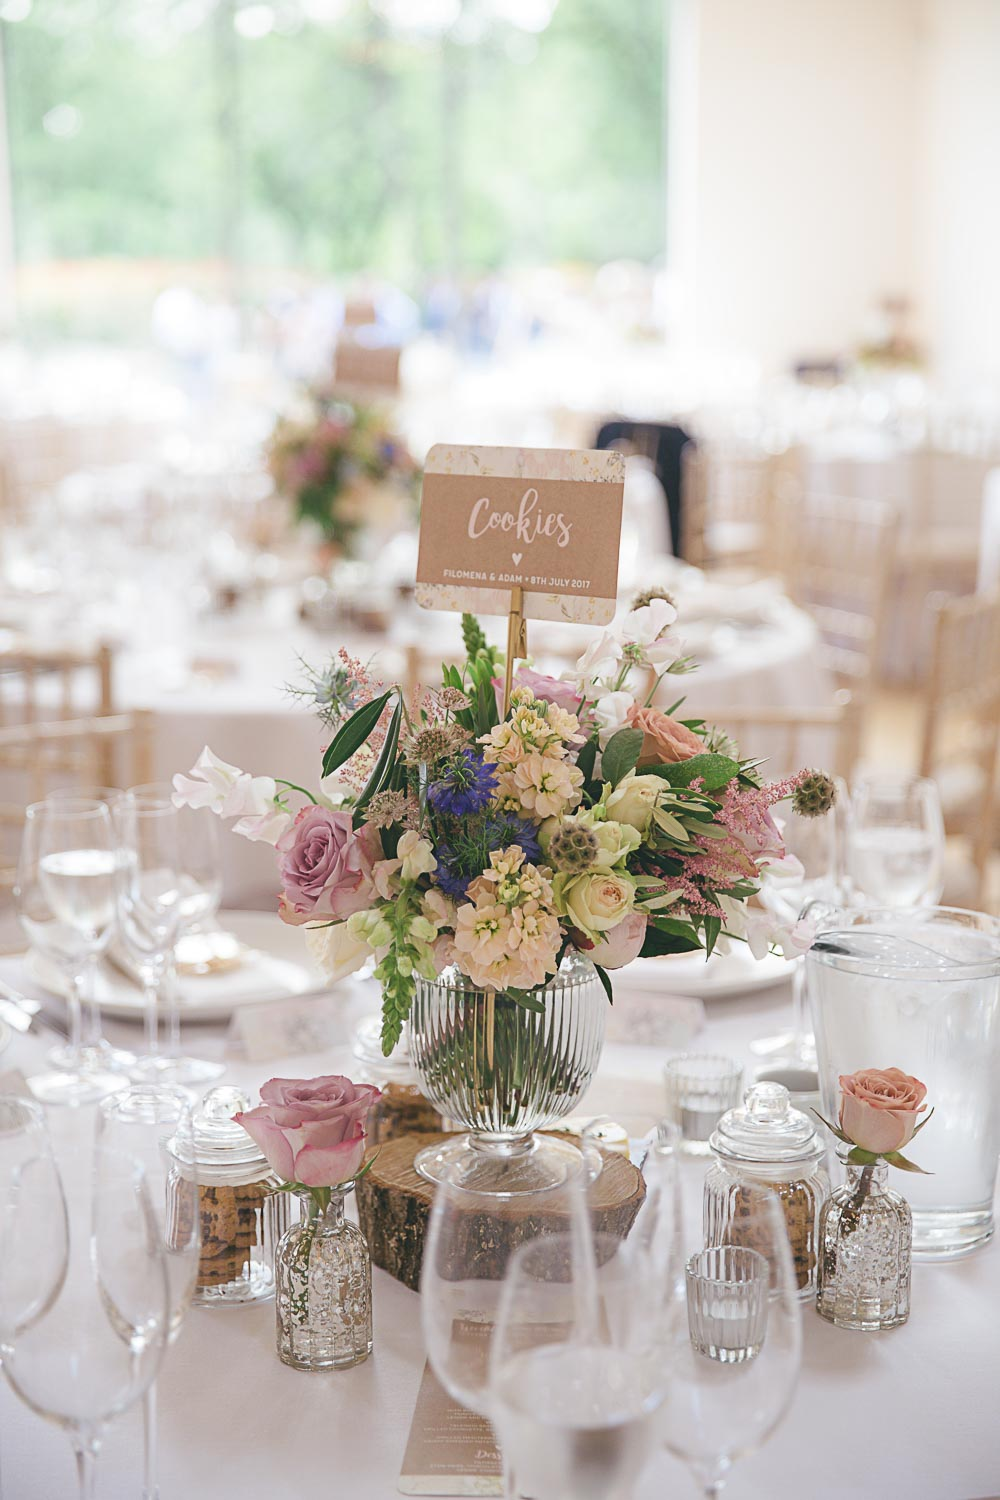 A Beautiful Rustic Surrey Wedding With Pastel Tones And Biscuit